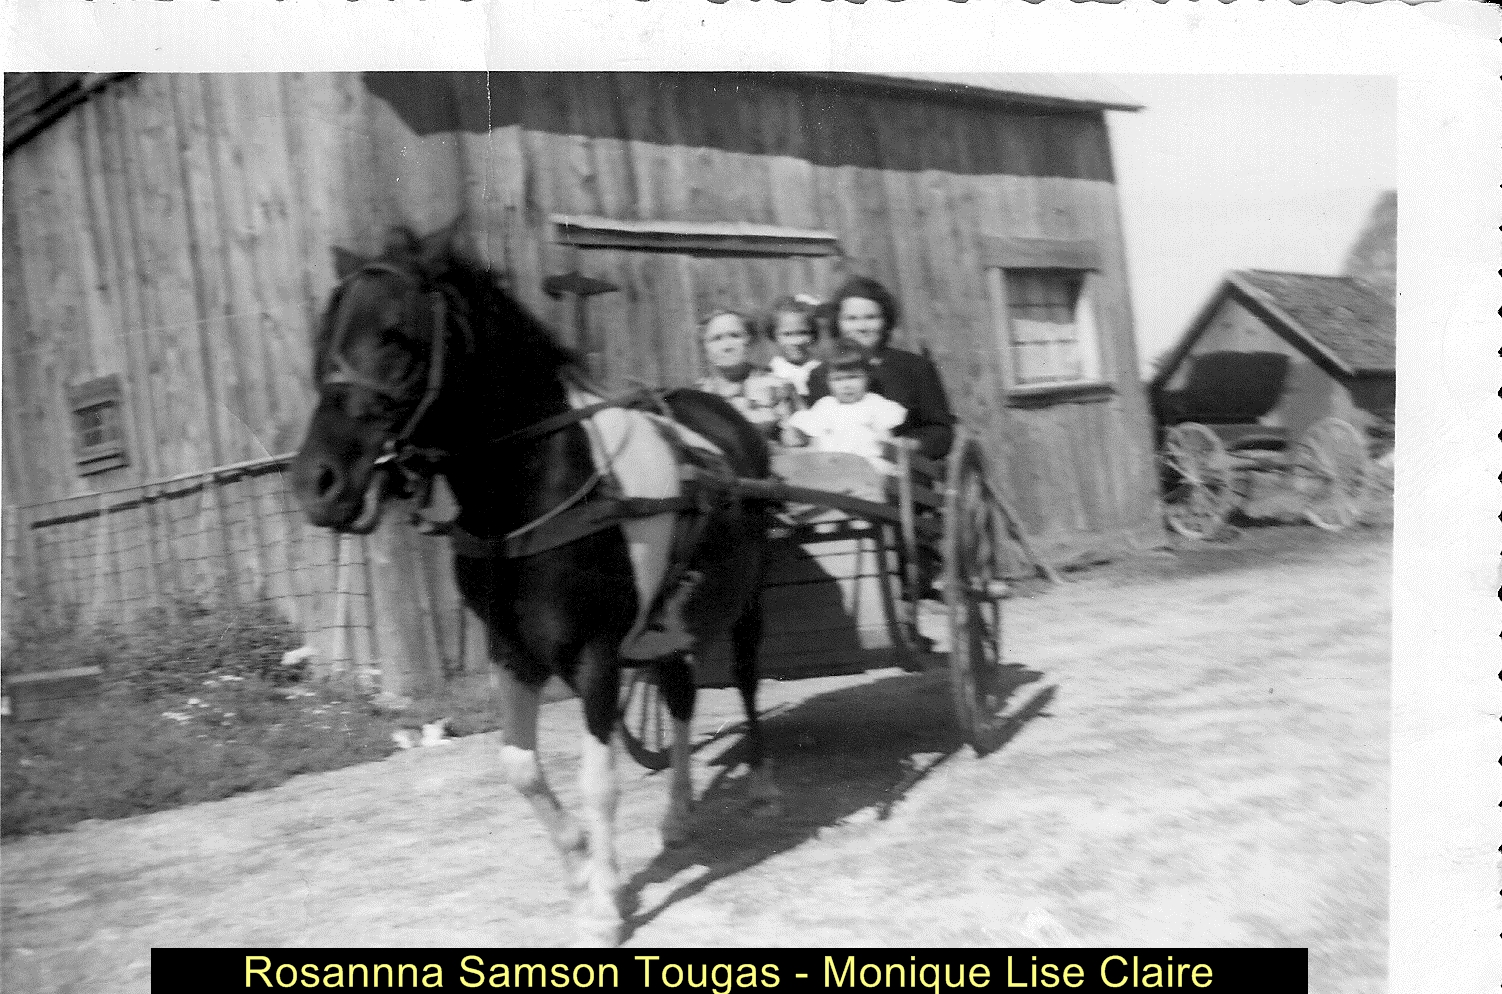 Rosannna Samson Tougas, Monique Lise Claire